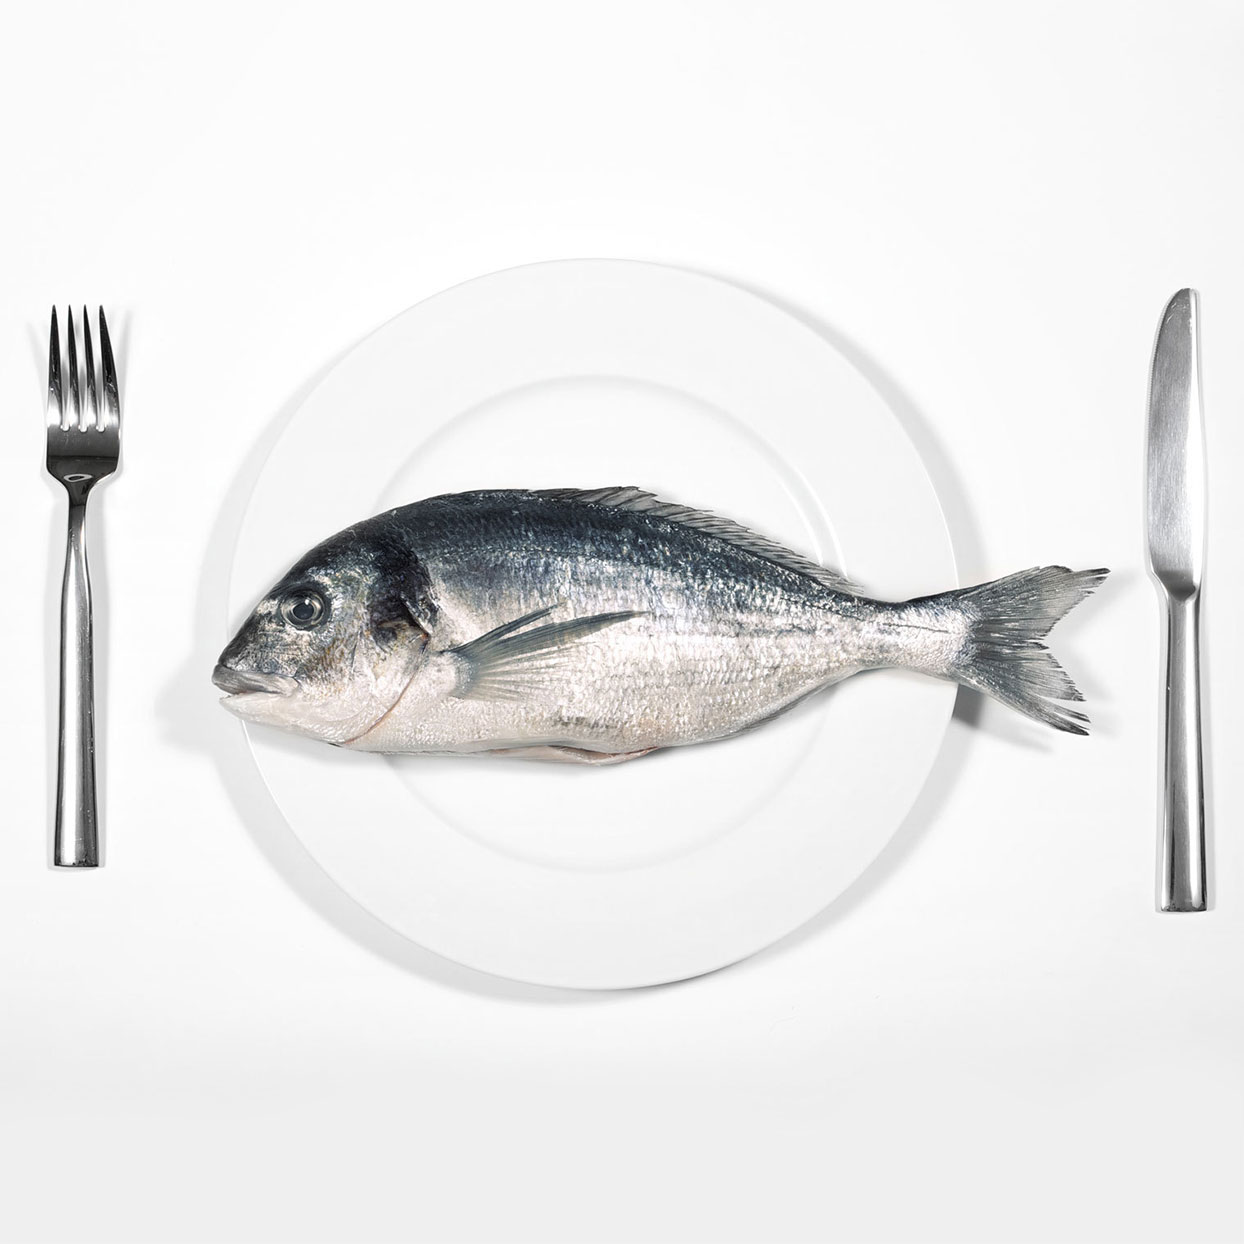 I've Been Vegan for 5 Years, but I'm Starting to Eat Fish Again—Here's Why